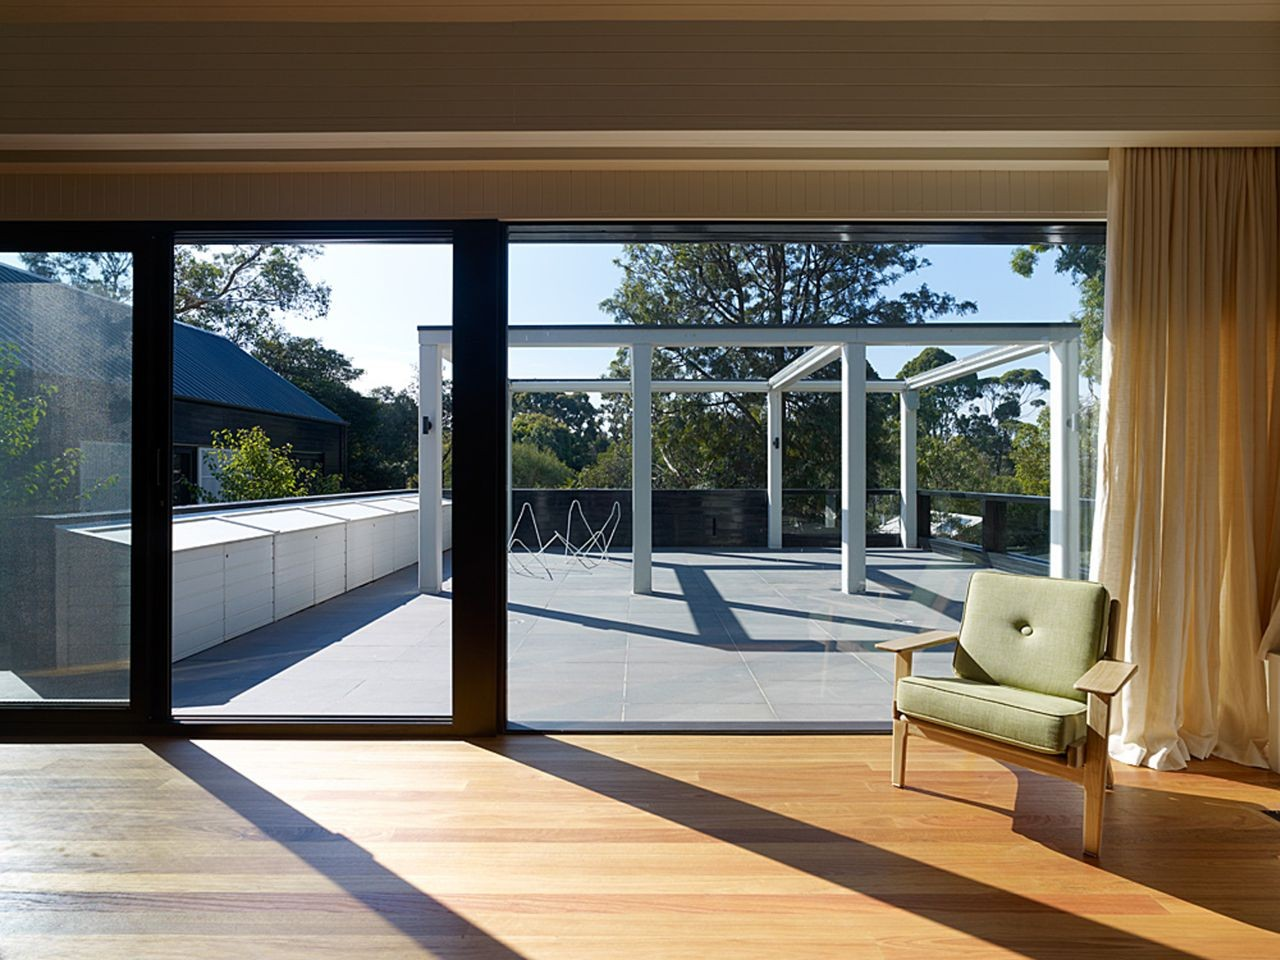 Blake street b e architecture archdaily for Large sliding glass doors